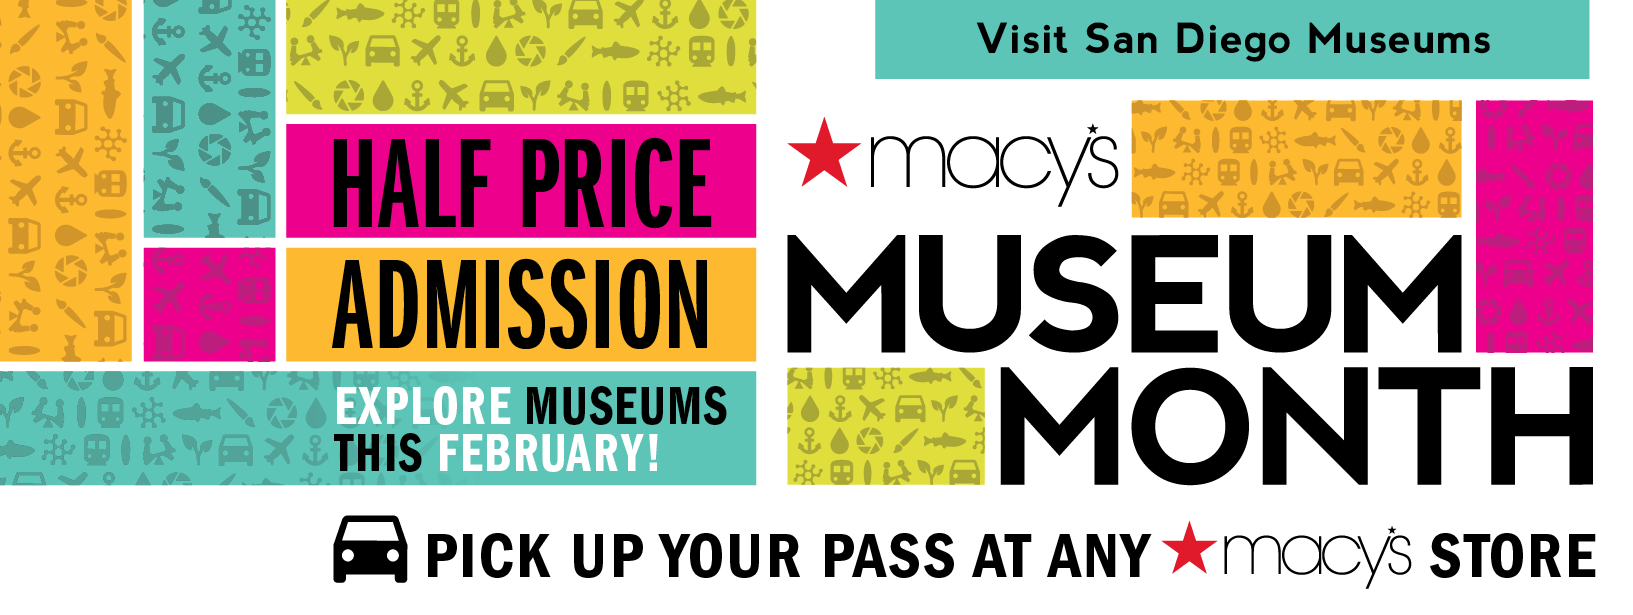 Macy's Museum Month 2017 - Top Things to Do in San Diego